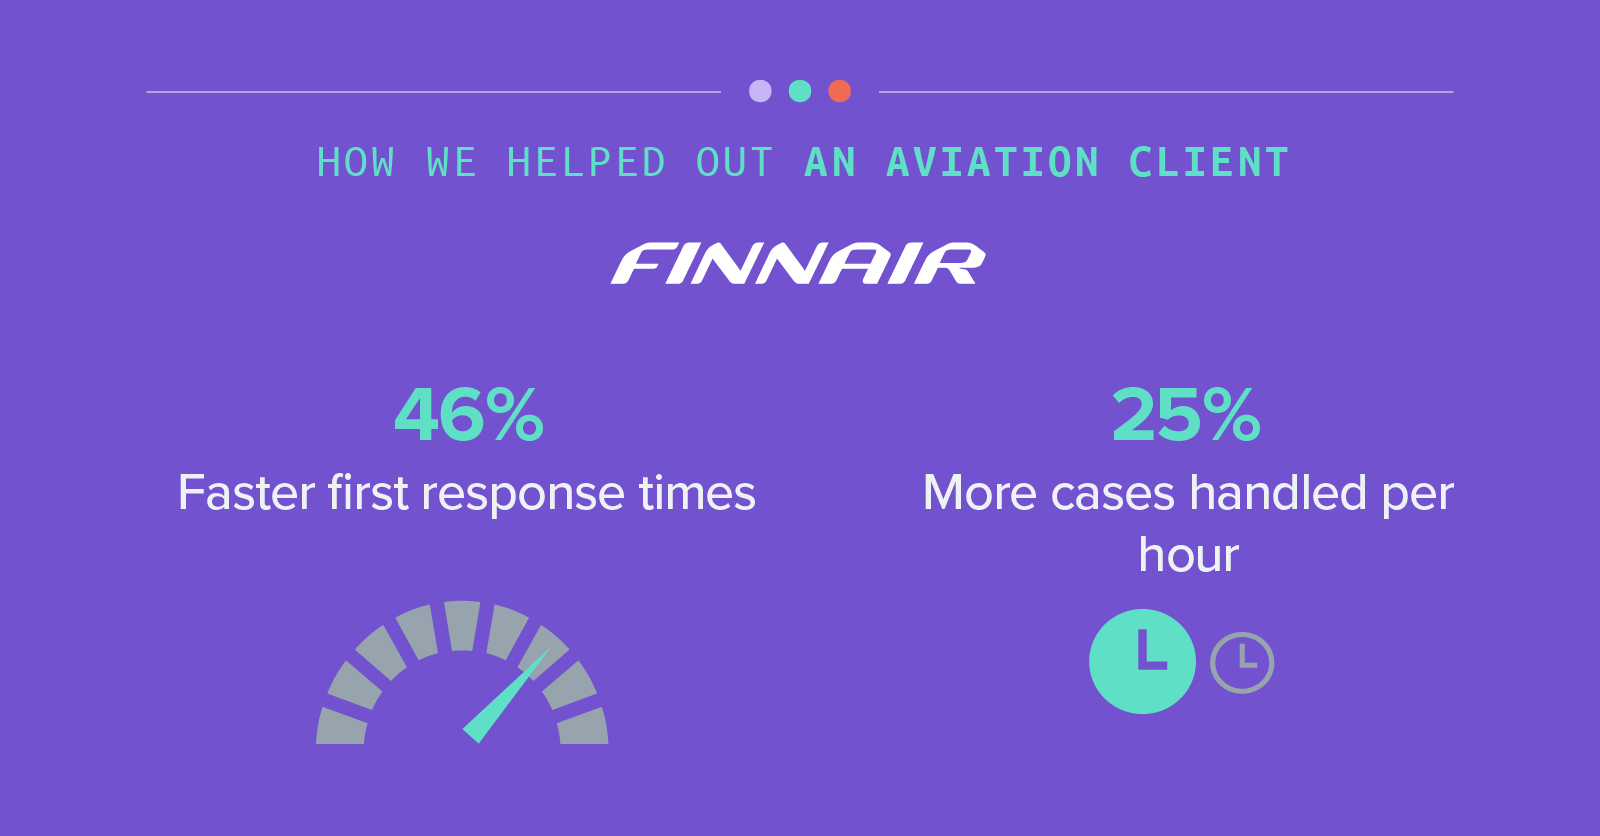 How we helped out an aviation client - Finnair - 46% Faster first response times - 25% More cases handled per hour